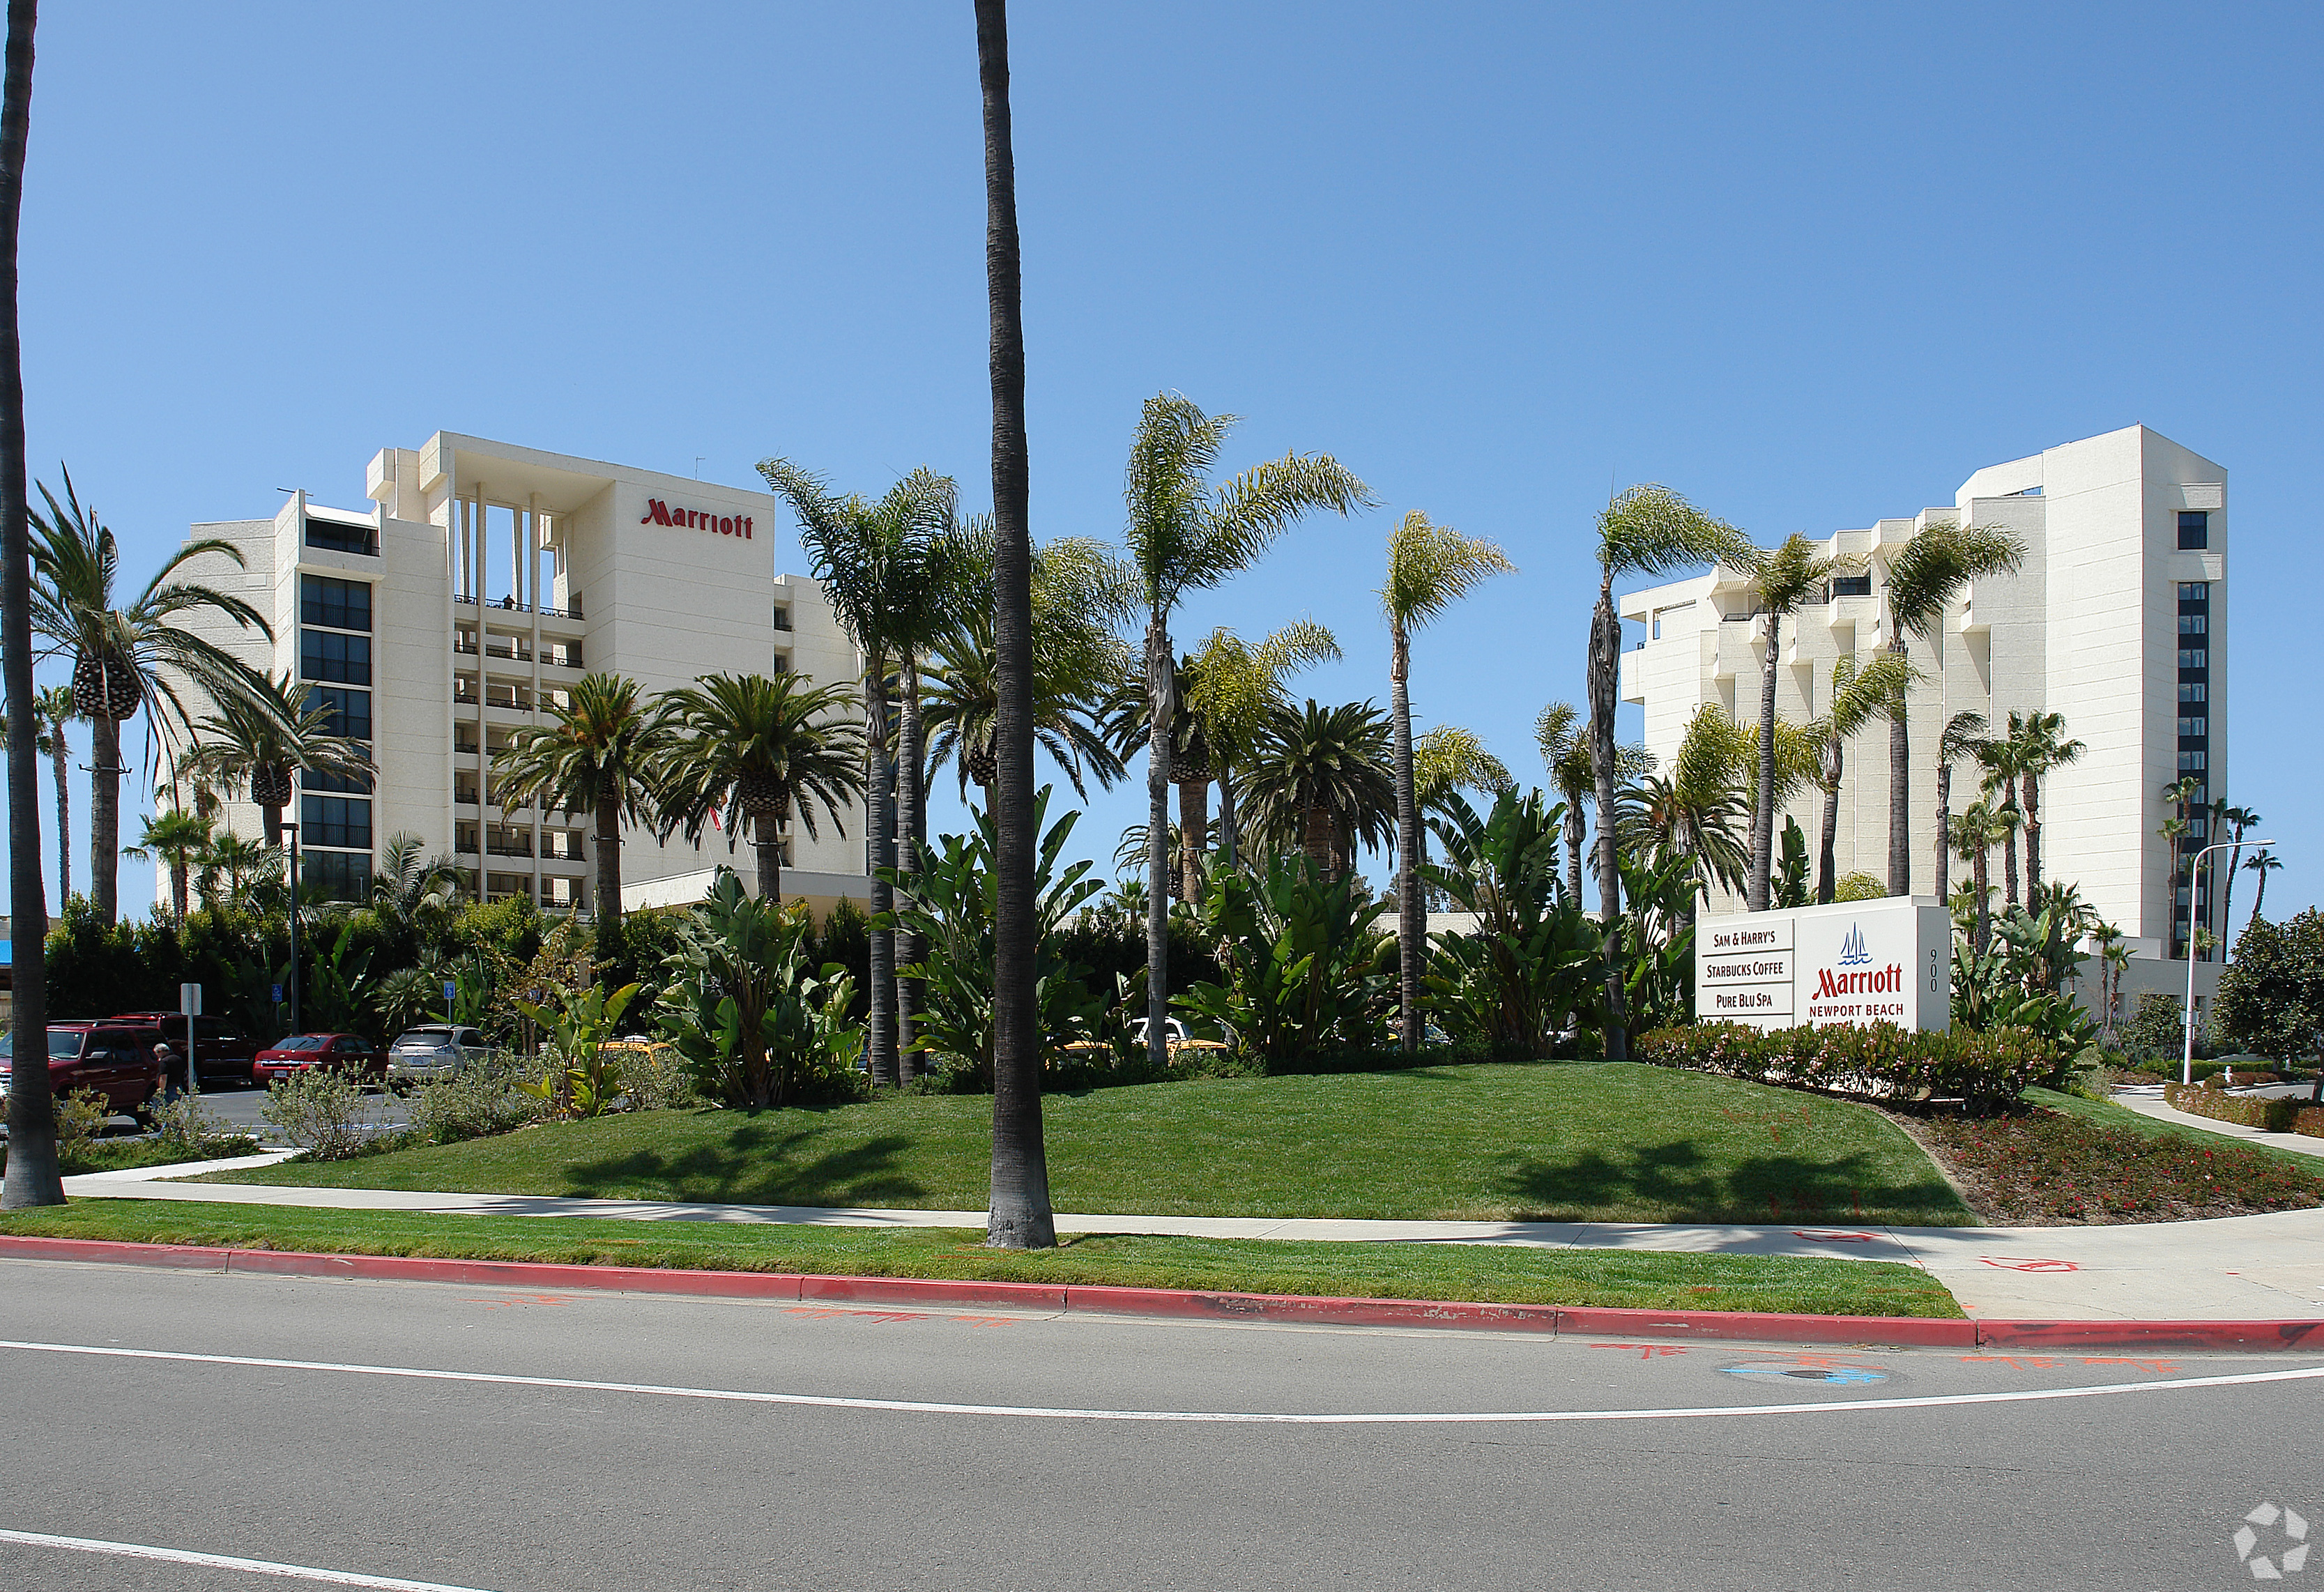 Host Hotels sold the 532-room Newport Beach Marriott Hotel & Spa in California's coastal Orange County. (CoStar)